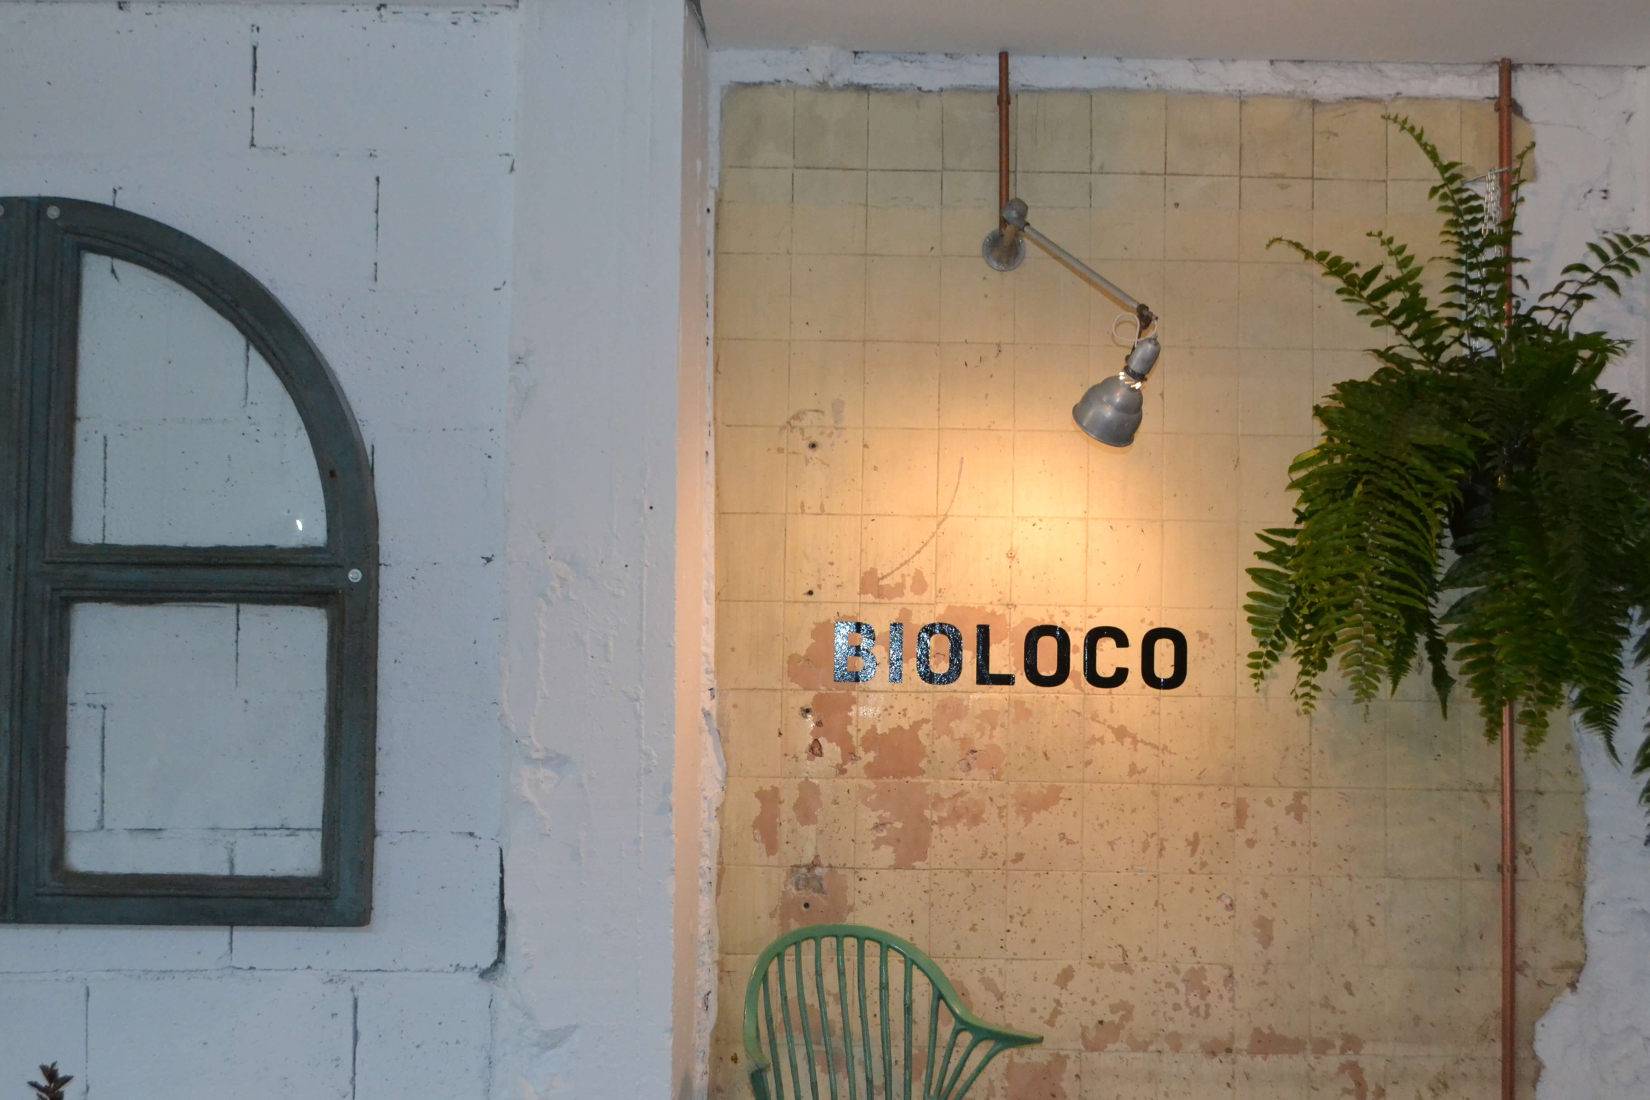 Bioloco Pared